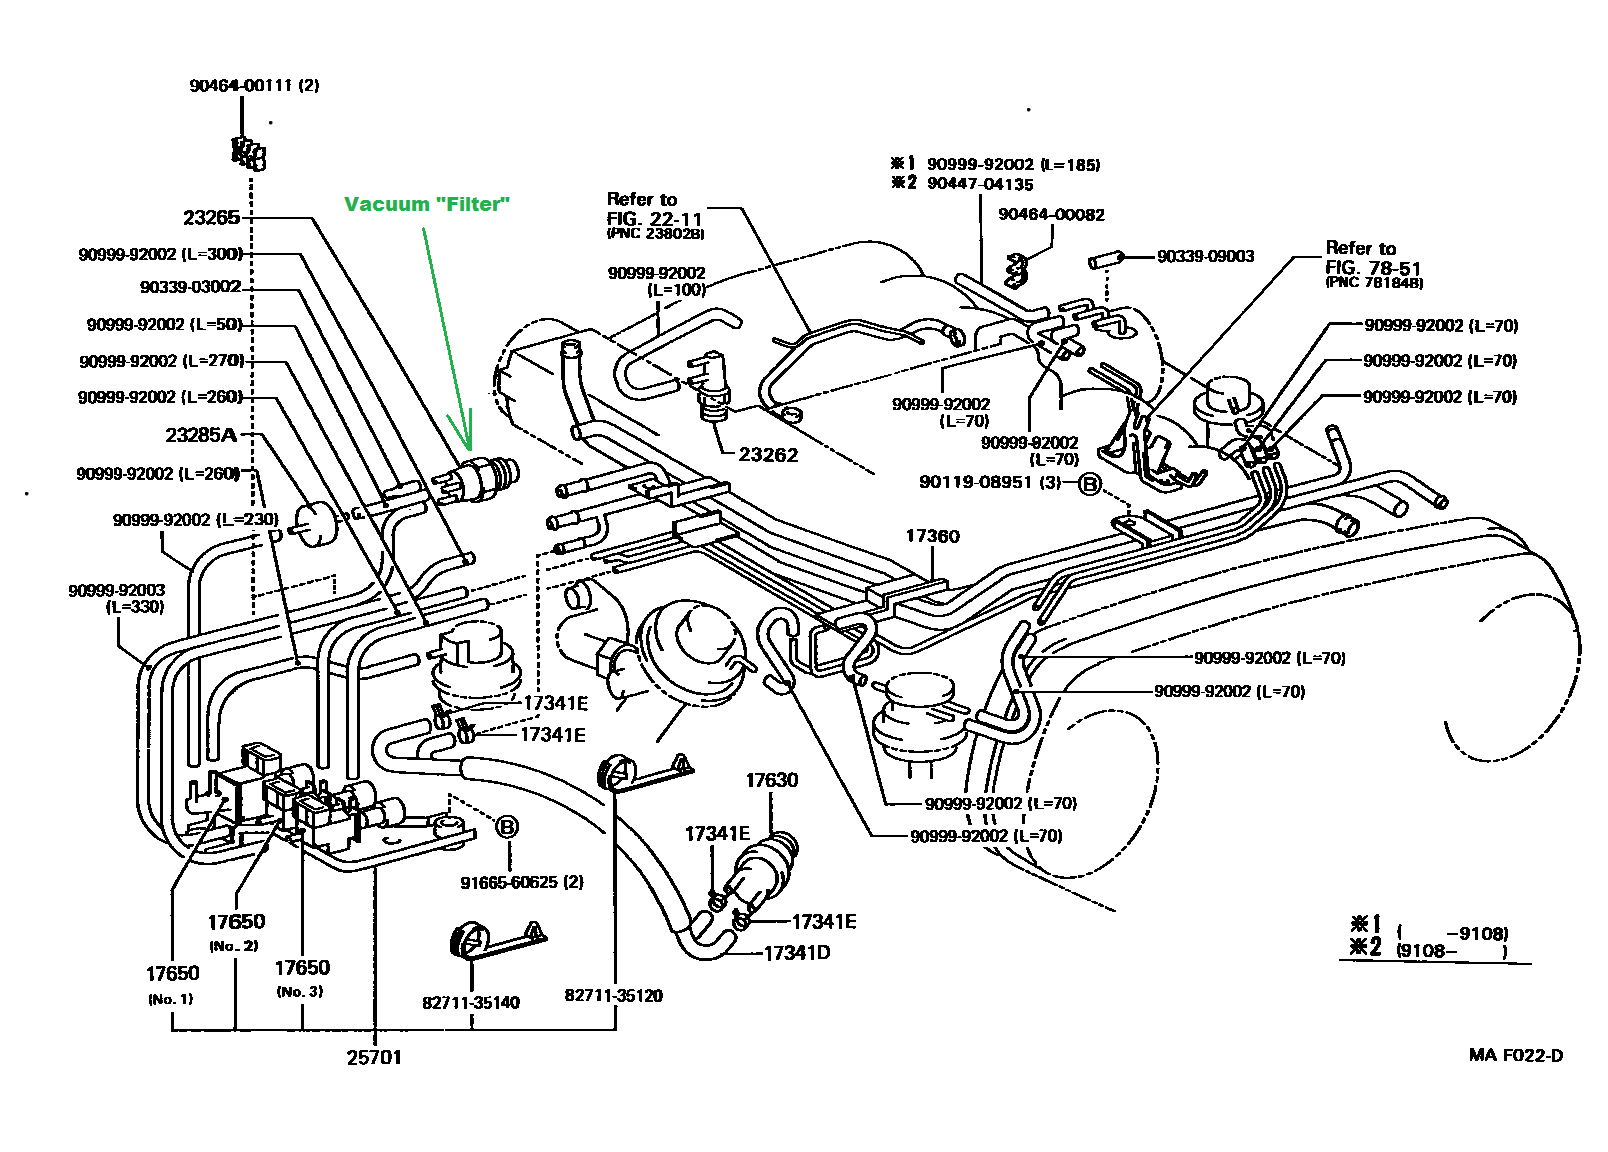 Toyota Camry 3 0 V6 Engine Diagram Not Lossing Wiring 3800 Lines 4 Head Trusted Rh 1 Nl Schoenheitsbrieftaube De